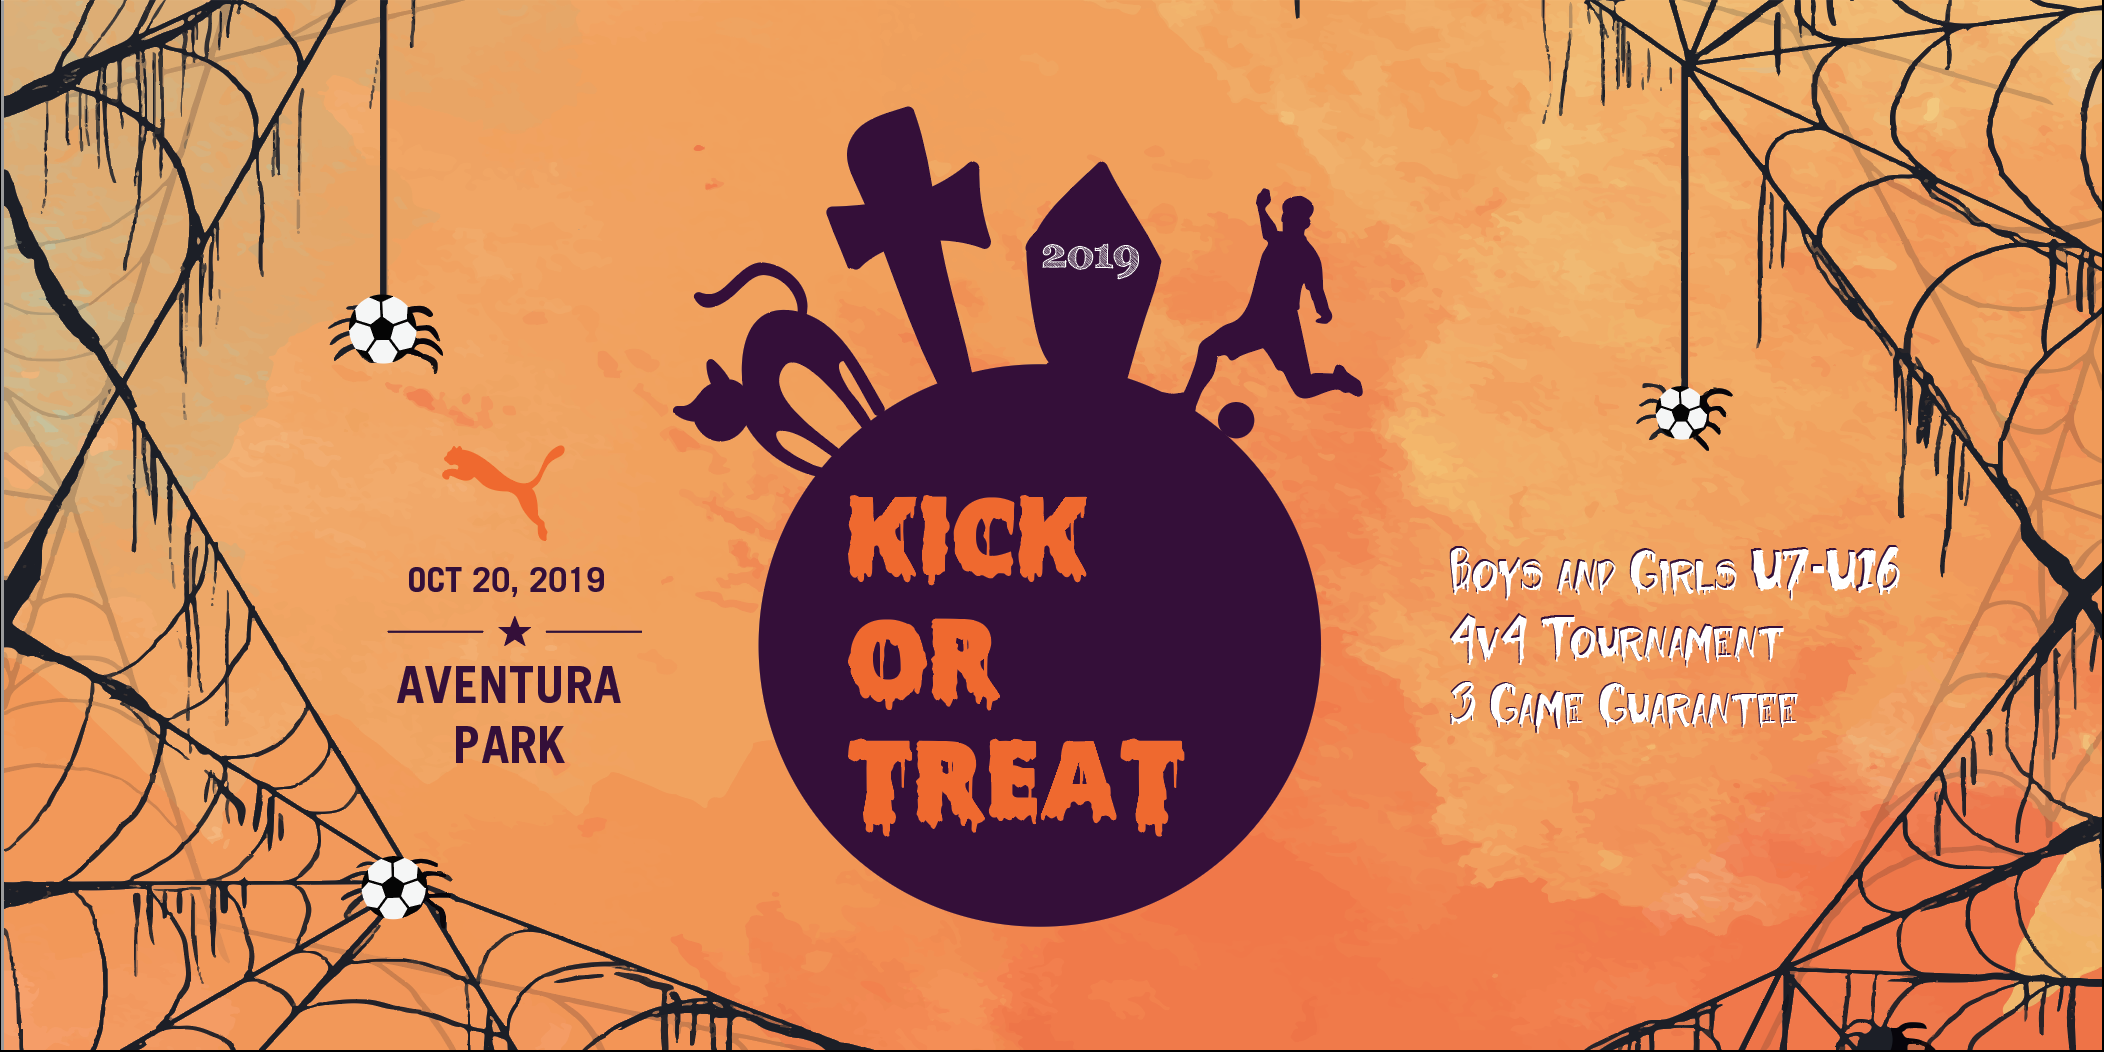 Kick or Treat 4v4 Soccer Festival